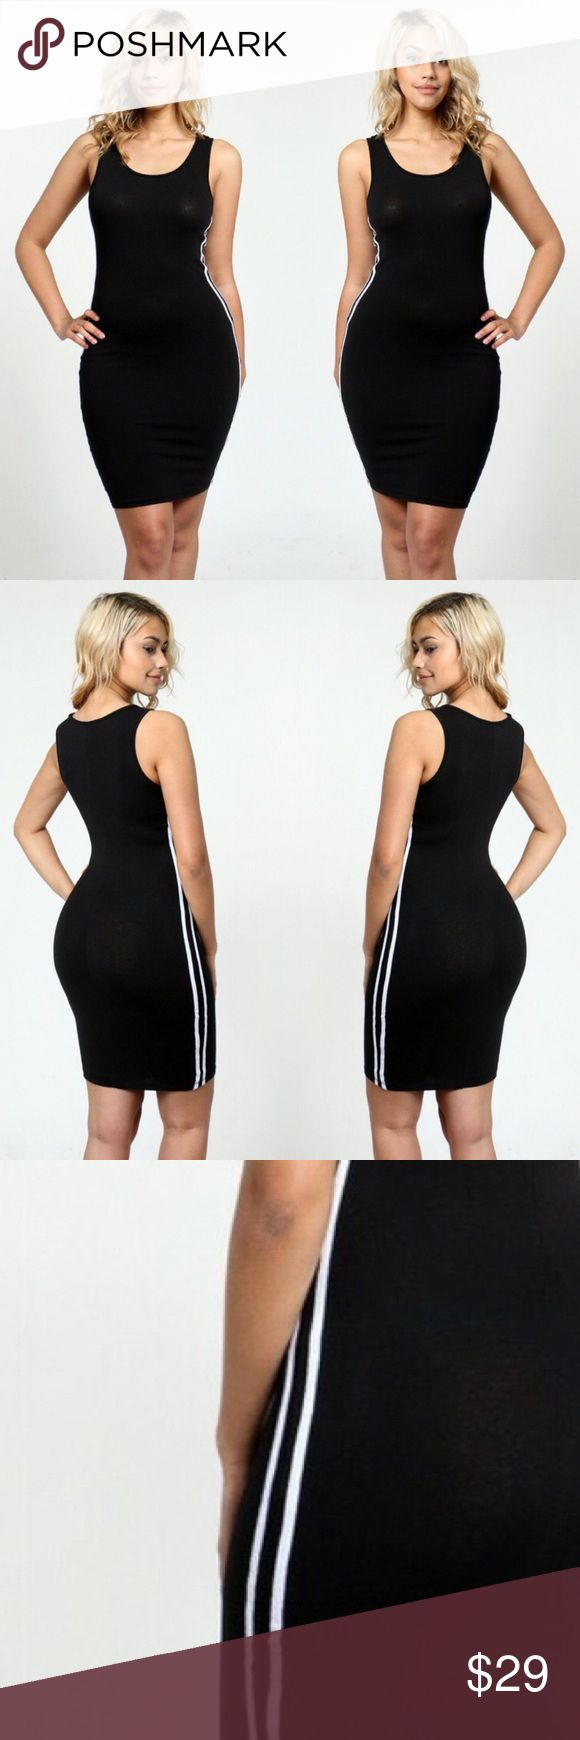 Sporty 💎 T-Shirt Dress Sporty black tshirt dress. Featuring two white strips at the side this stretchy and breathable design is perfect for everyday use. Dresses Midi